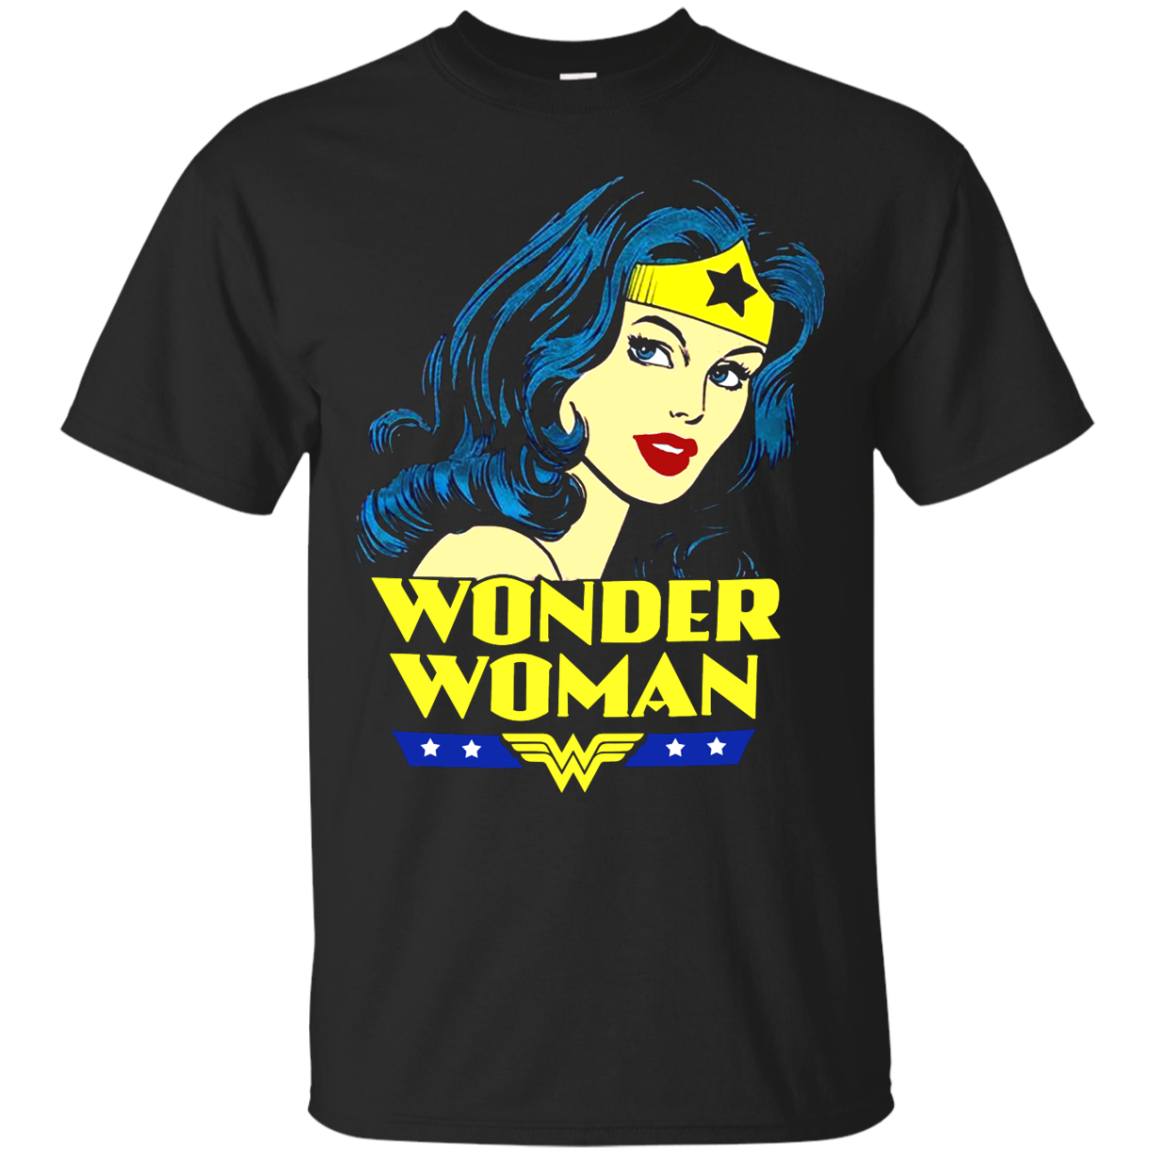 Check Out This Awesome Wonder Woman T Shirt